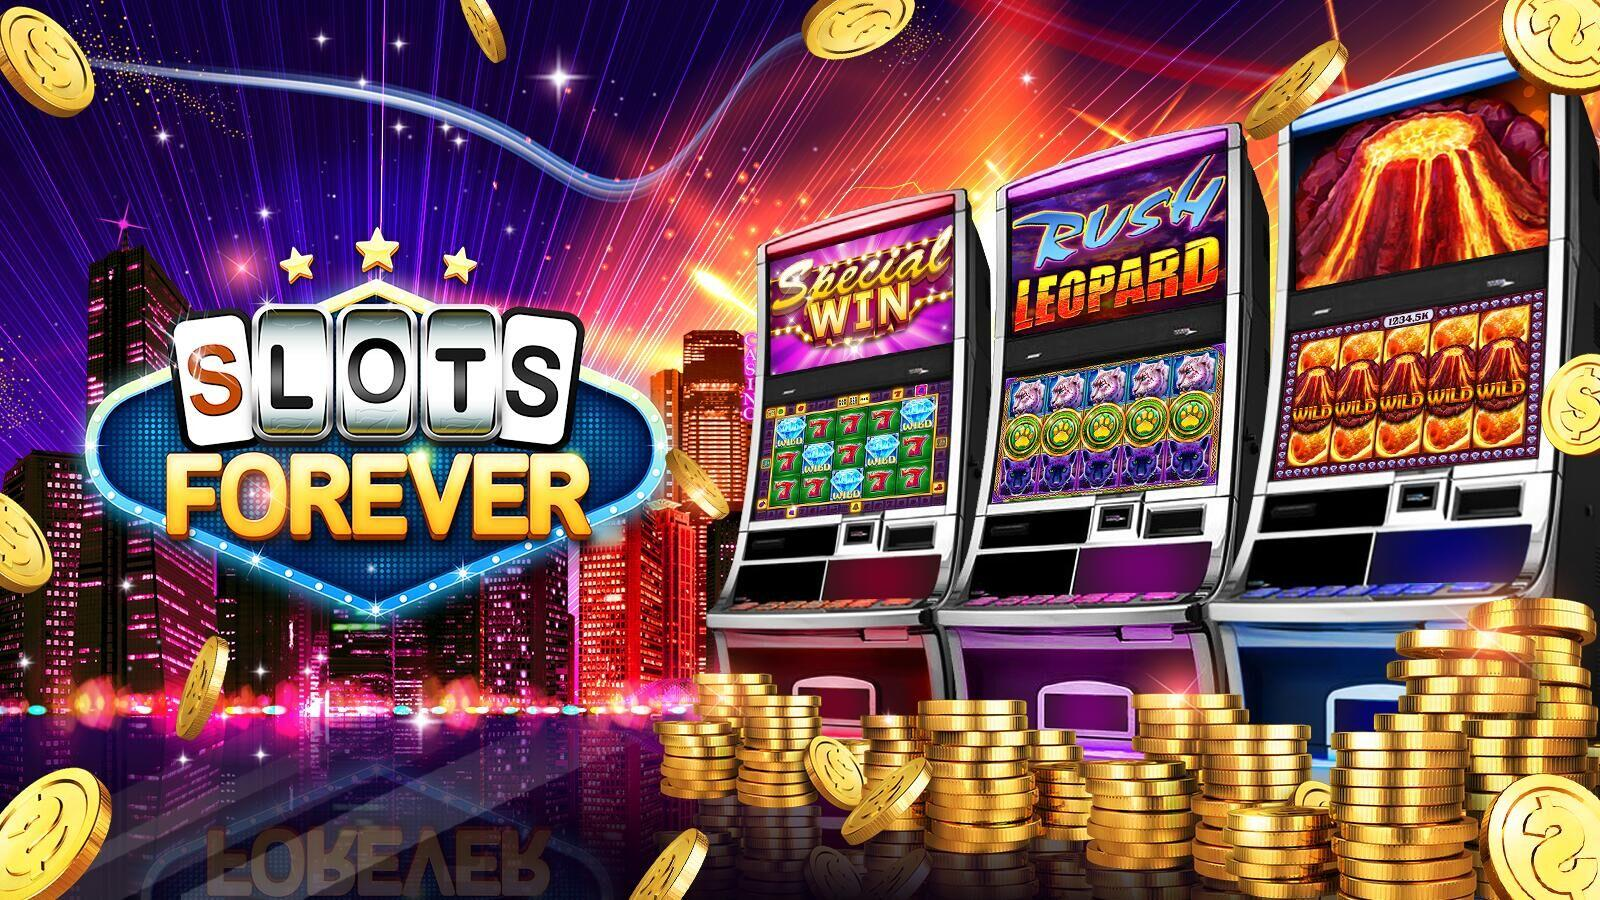 slots | Euro Palace Casino Blog - Part 2